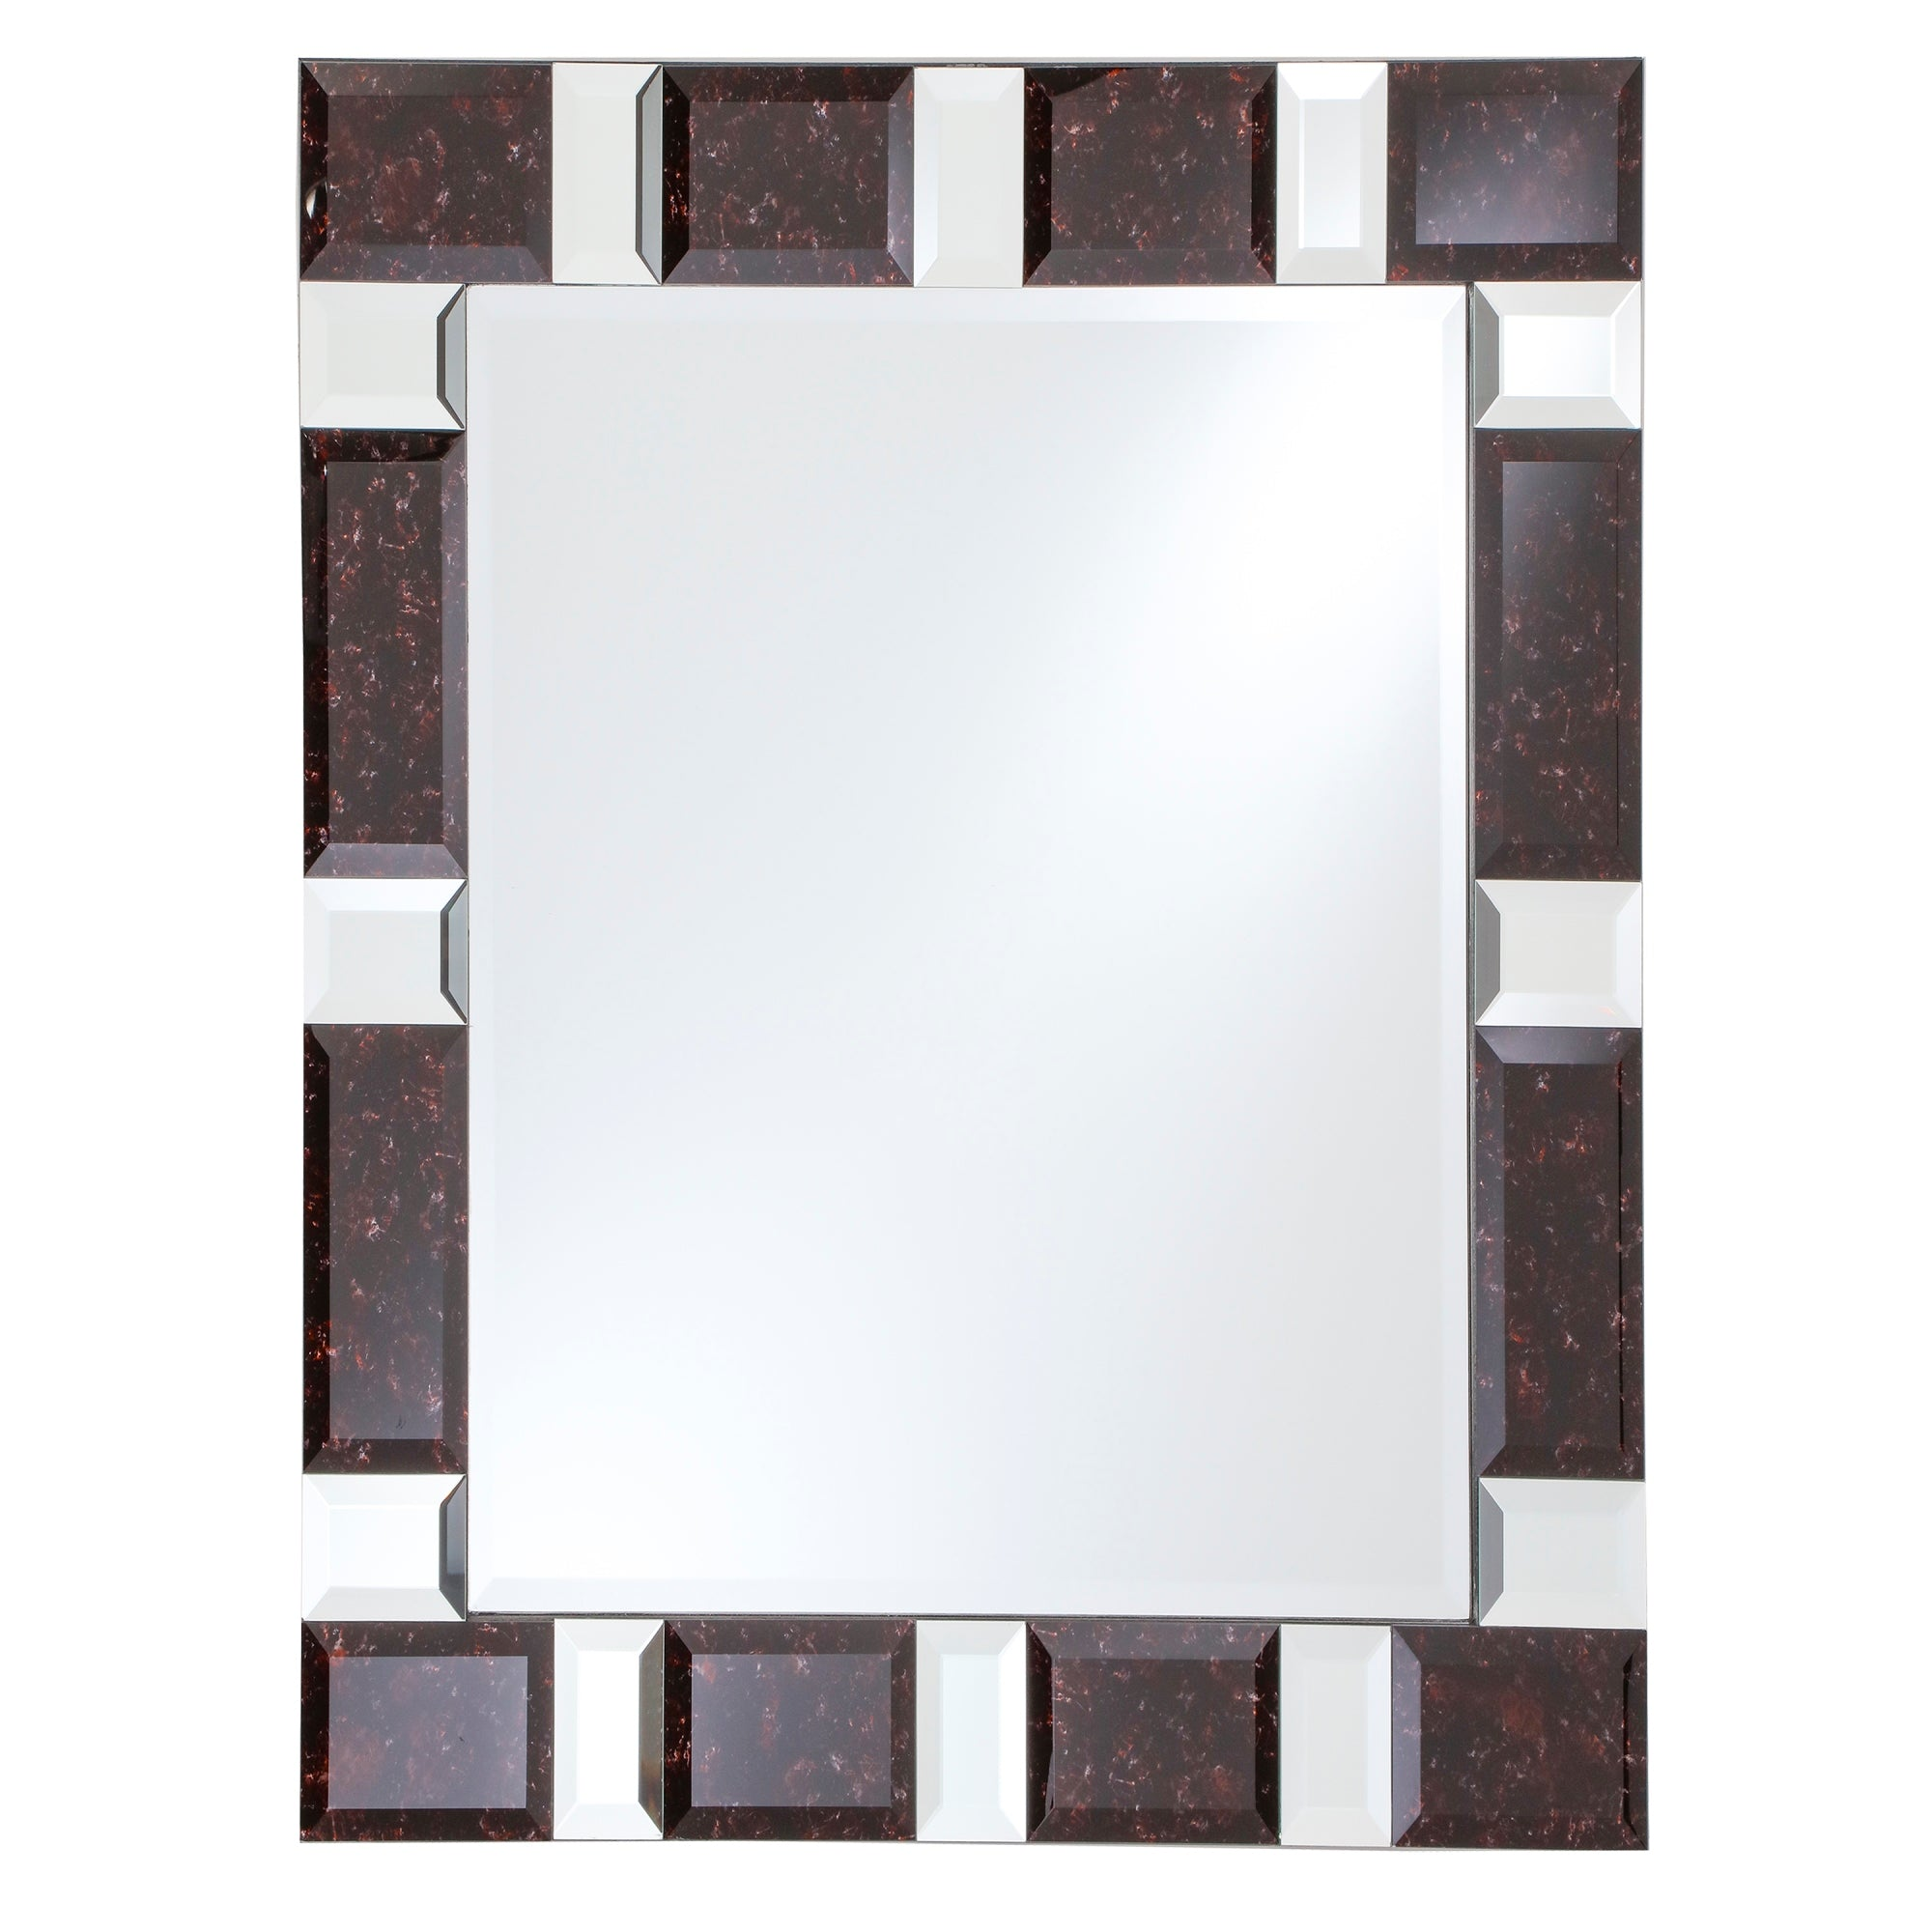 M00218 30 X 40 Rectangular Beveled Large Wall Mirror Decorative Mirror Framed With Black Maroon Marble Glass Tiles And Mirrored Beveled Border